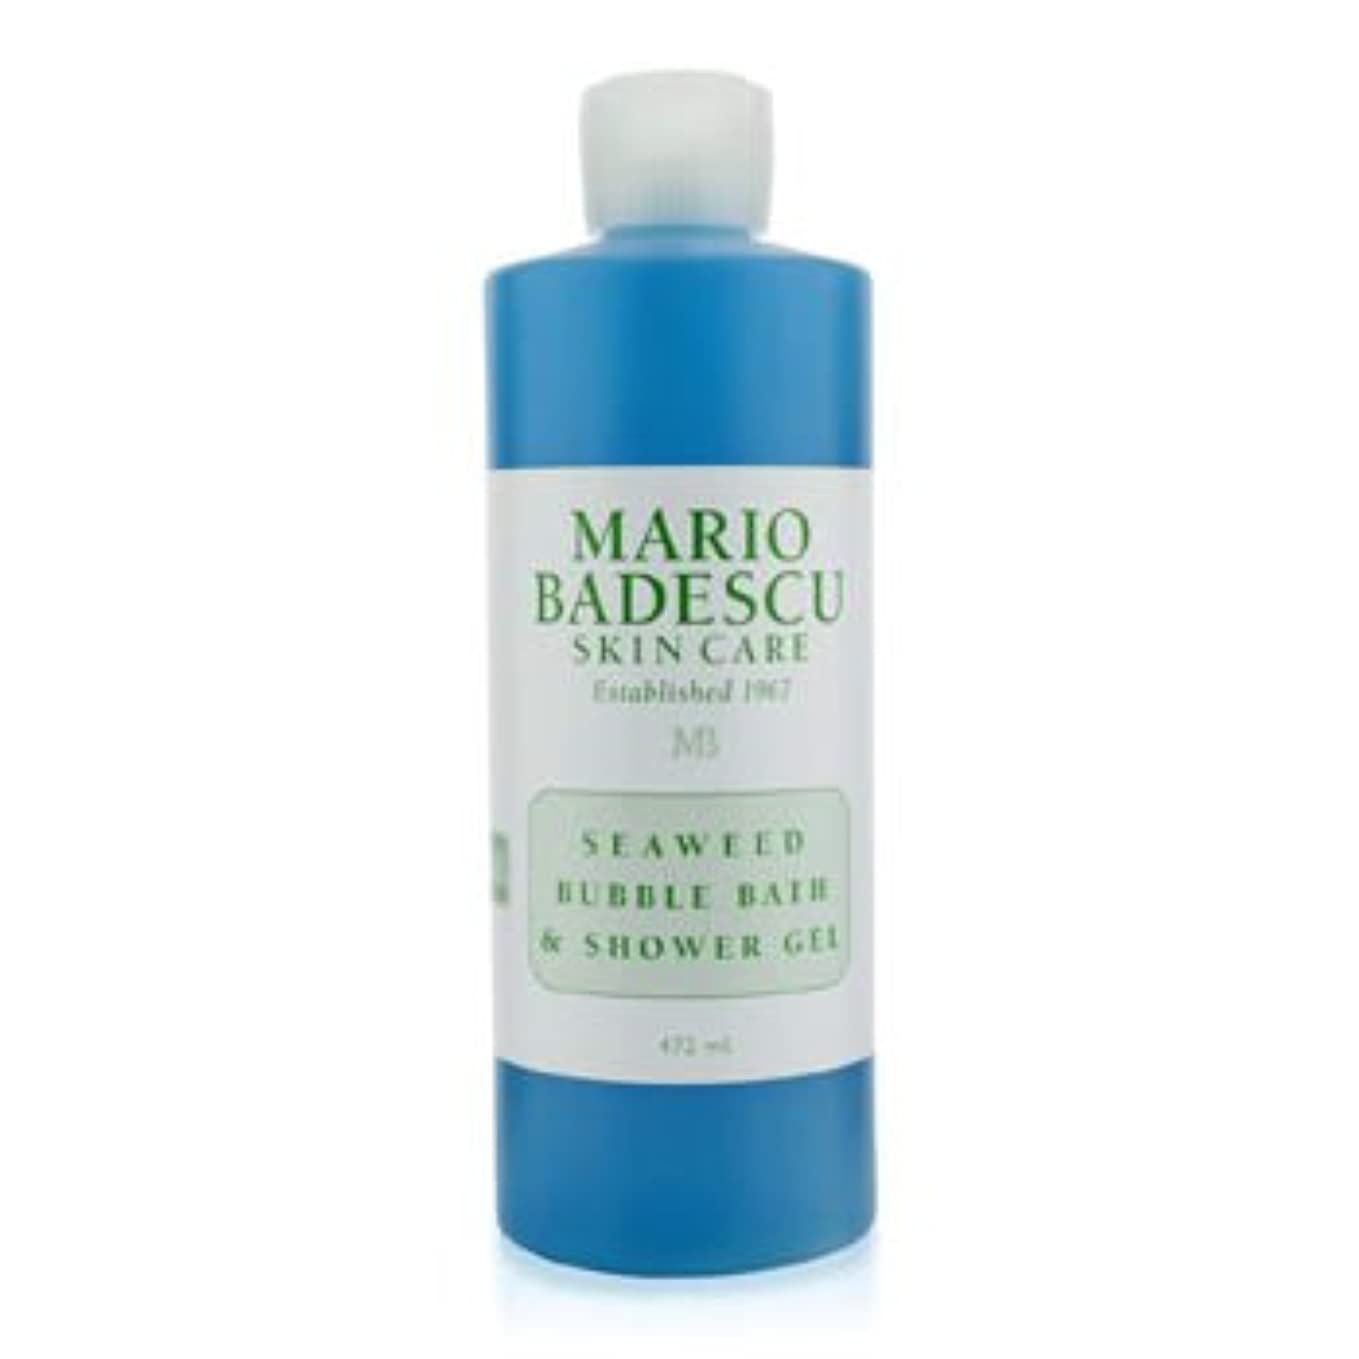 ジェム知覚的その[Mario Badescu] Seaweed Bubble Bath & Shower Gel 472ml/16oz